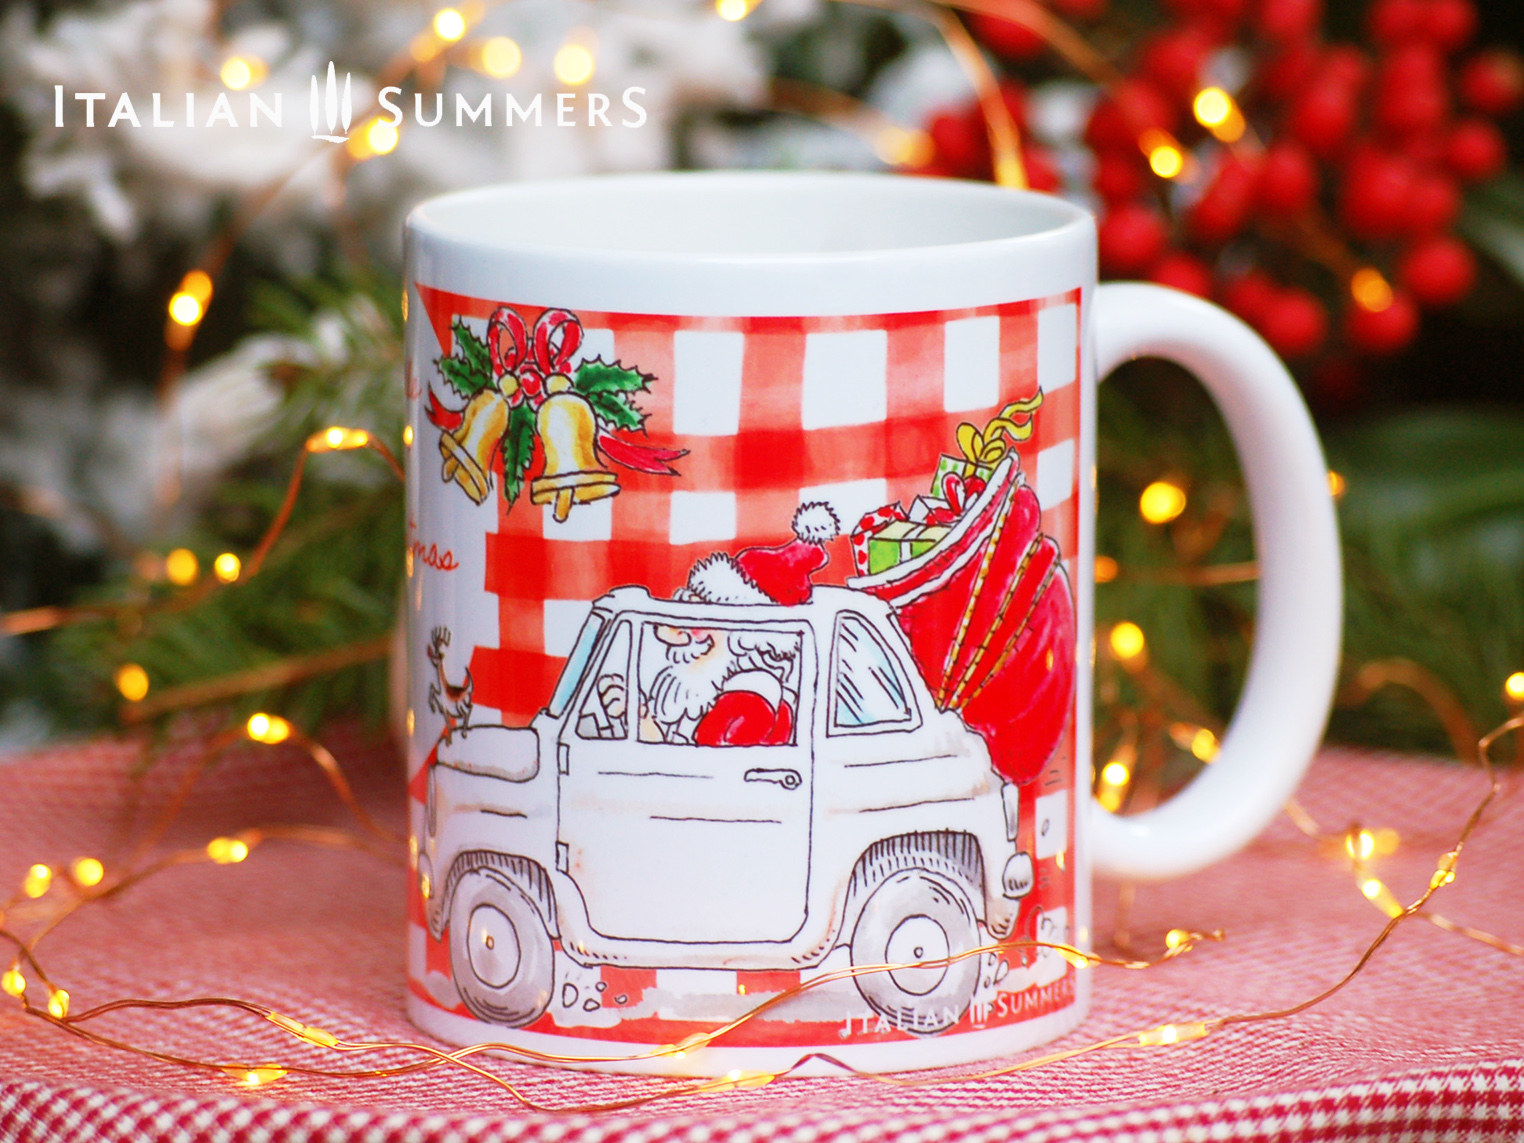 Italian Christmas Mugs The Gift Collection Personalize It Italian Summers